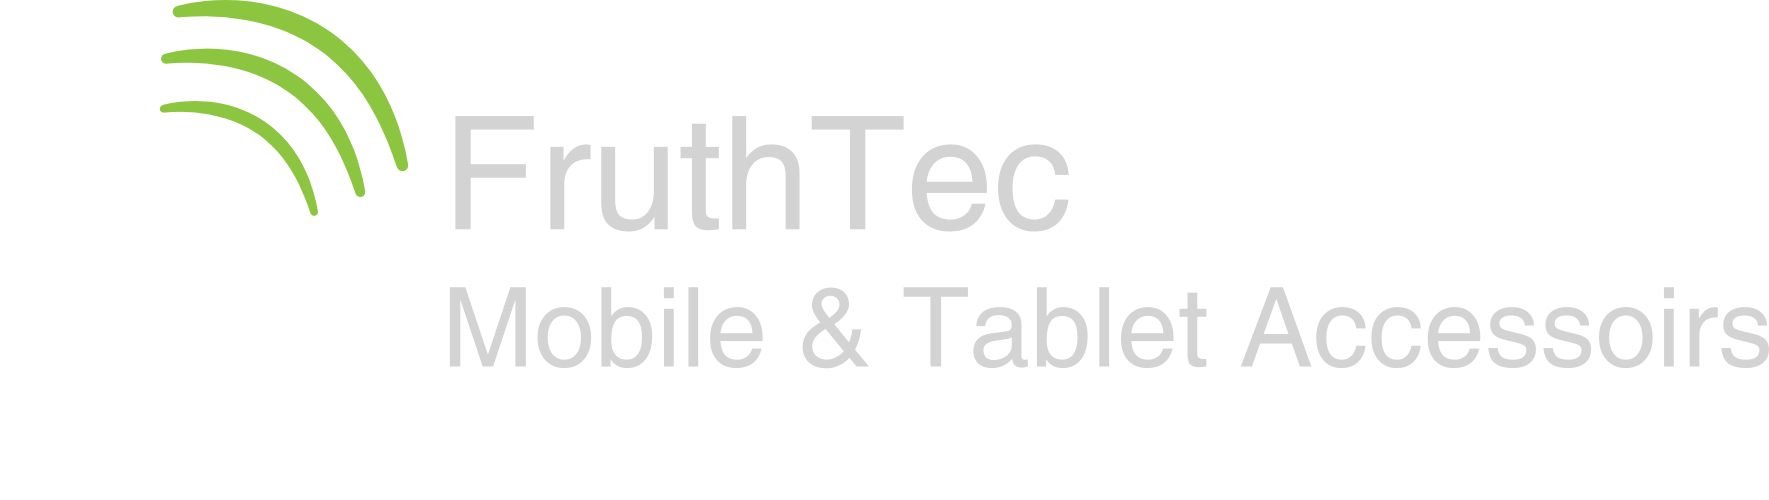 FruthTec - Mobile Accessoirs-Logo